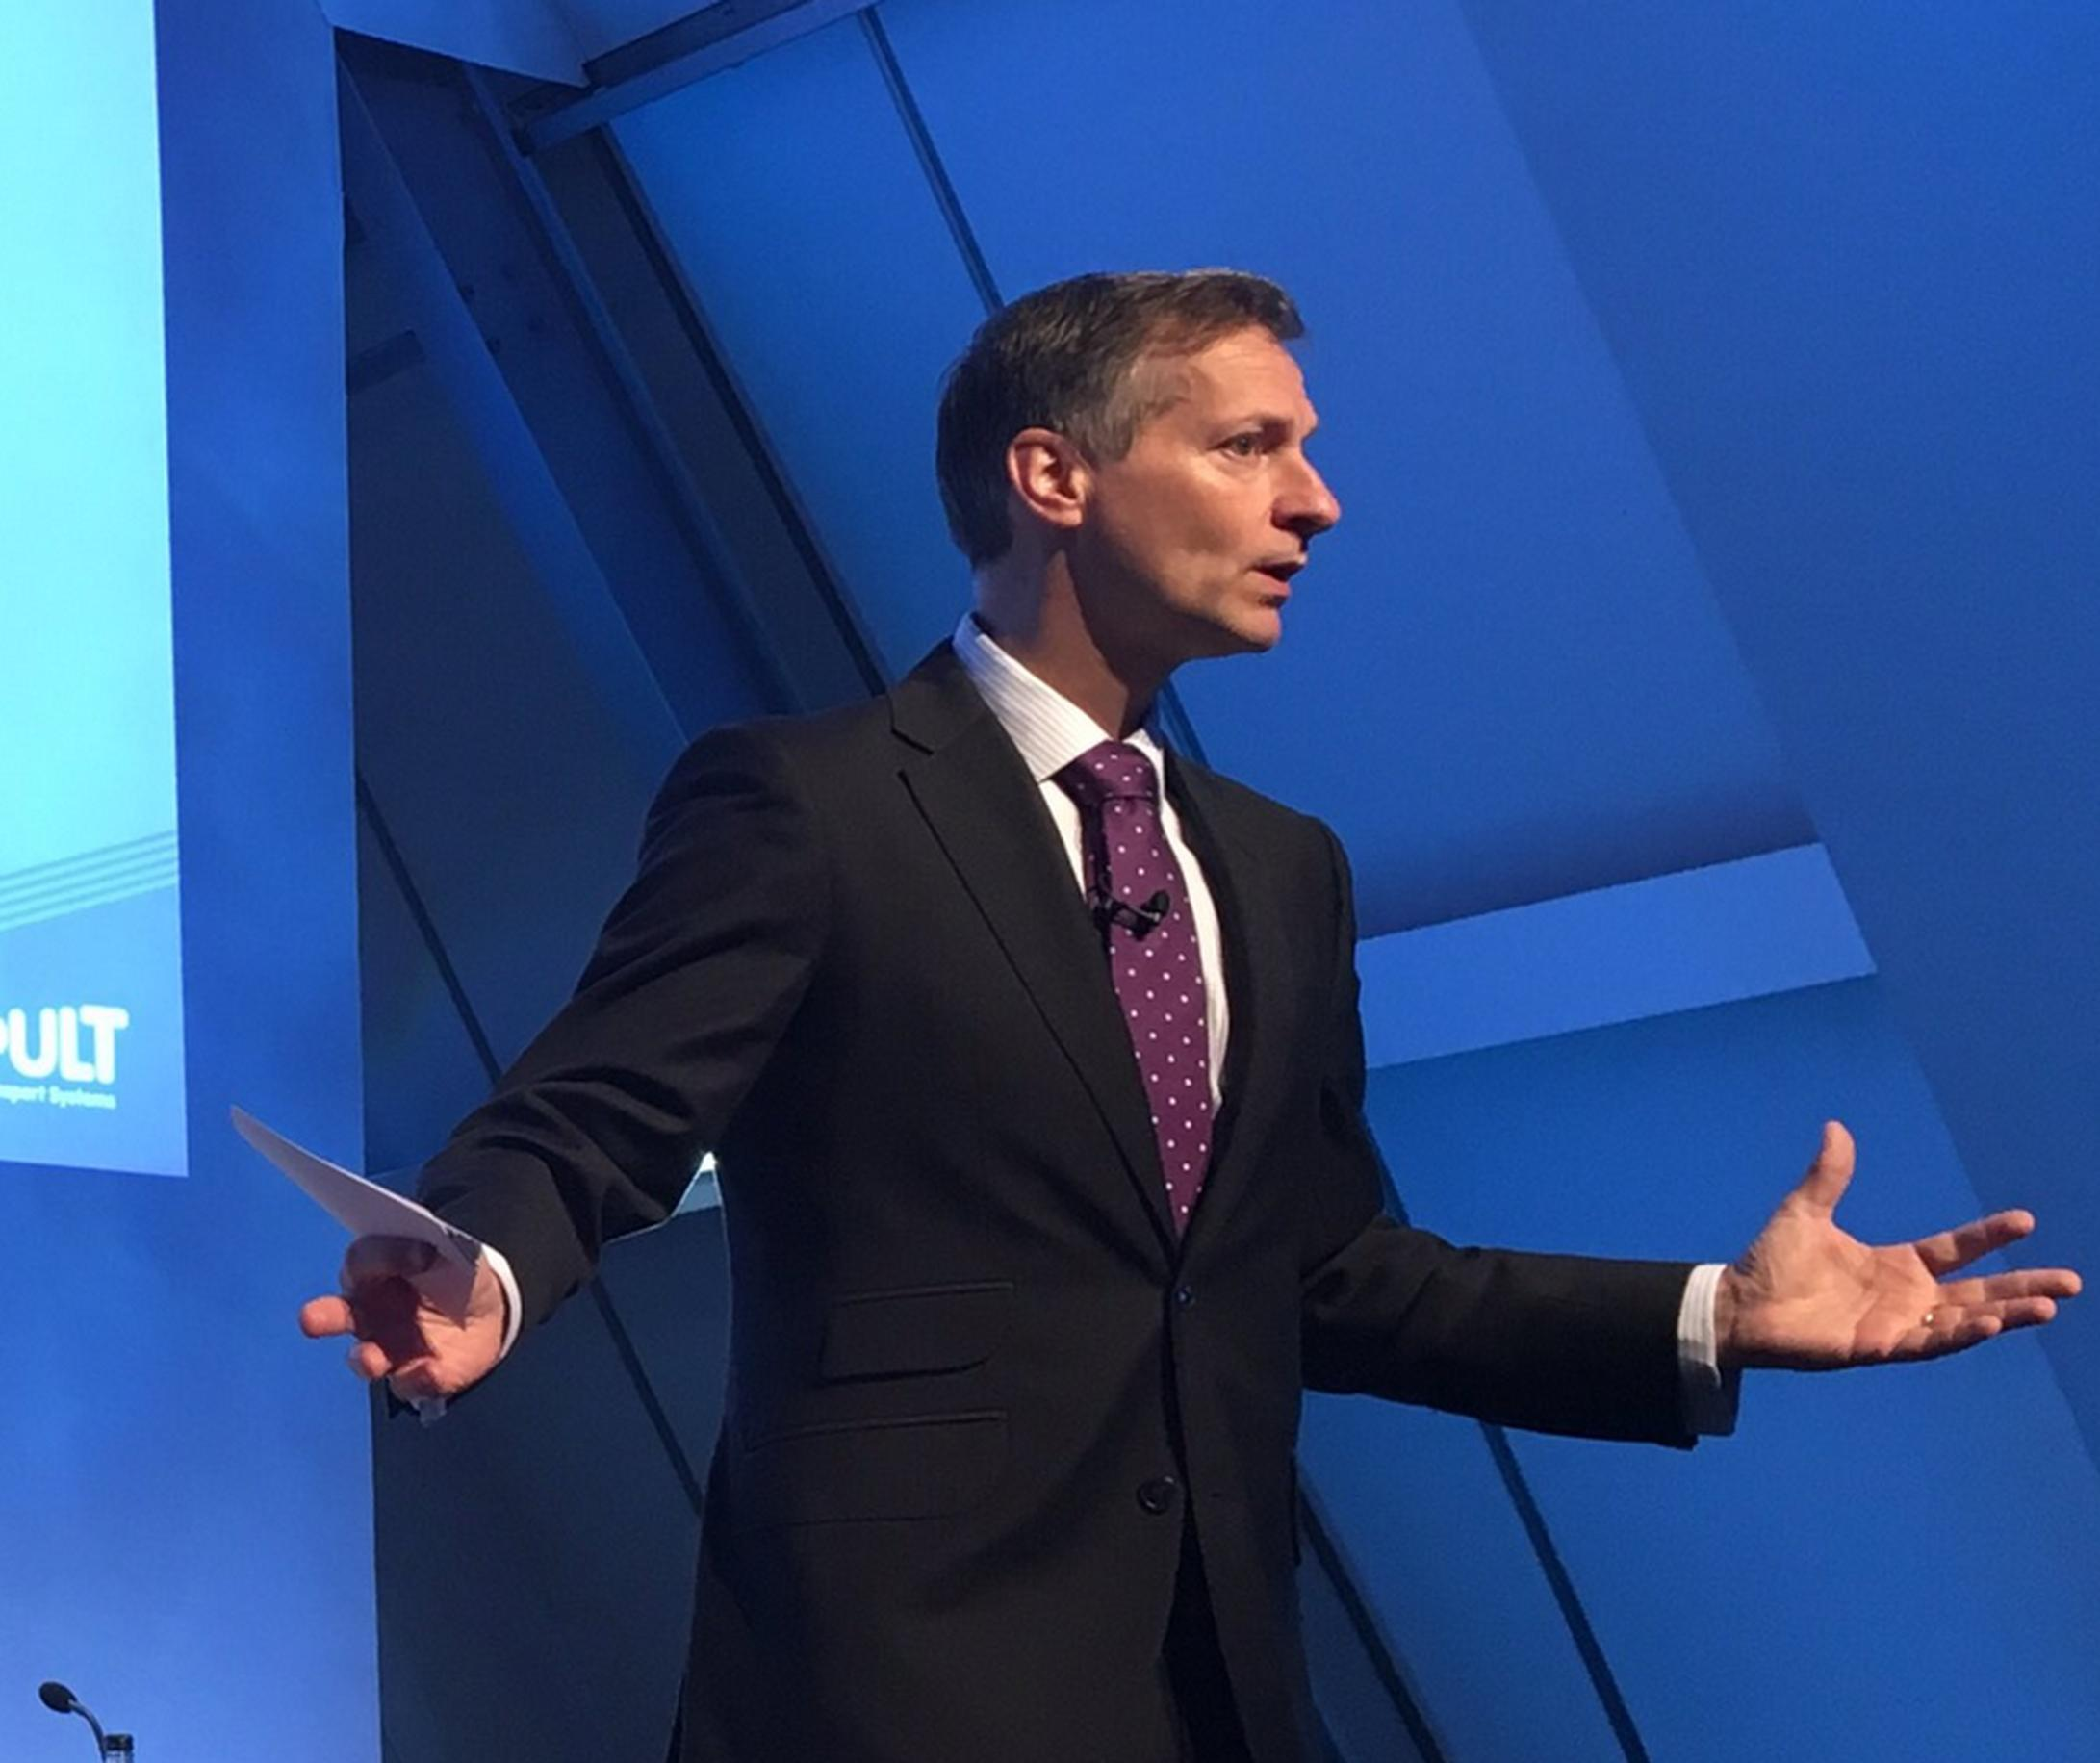 Transport Systems Catapult chief executive Paul Campion at Cenex-LCV 2017